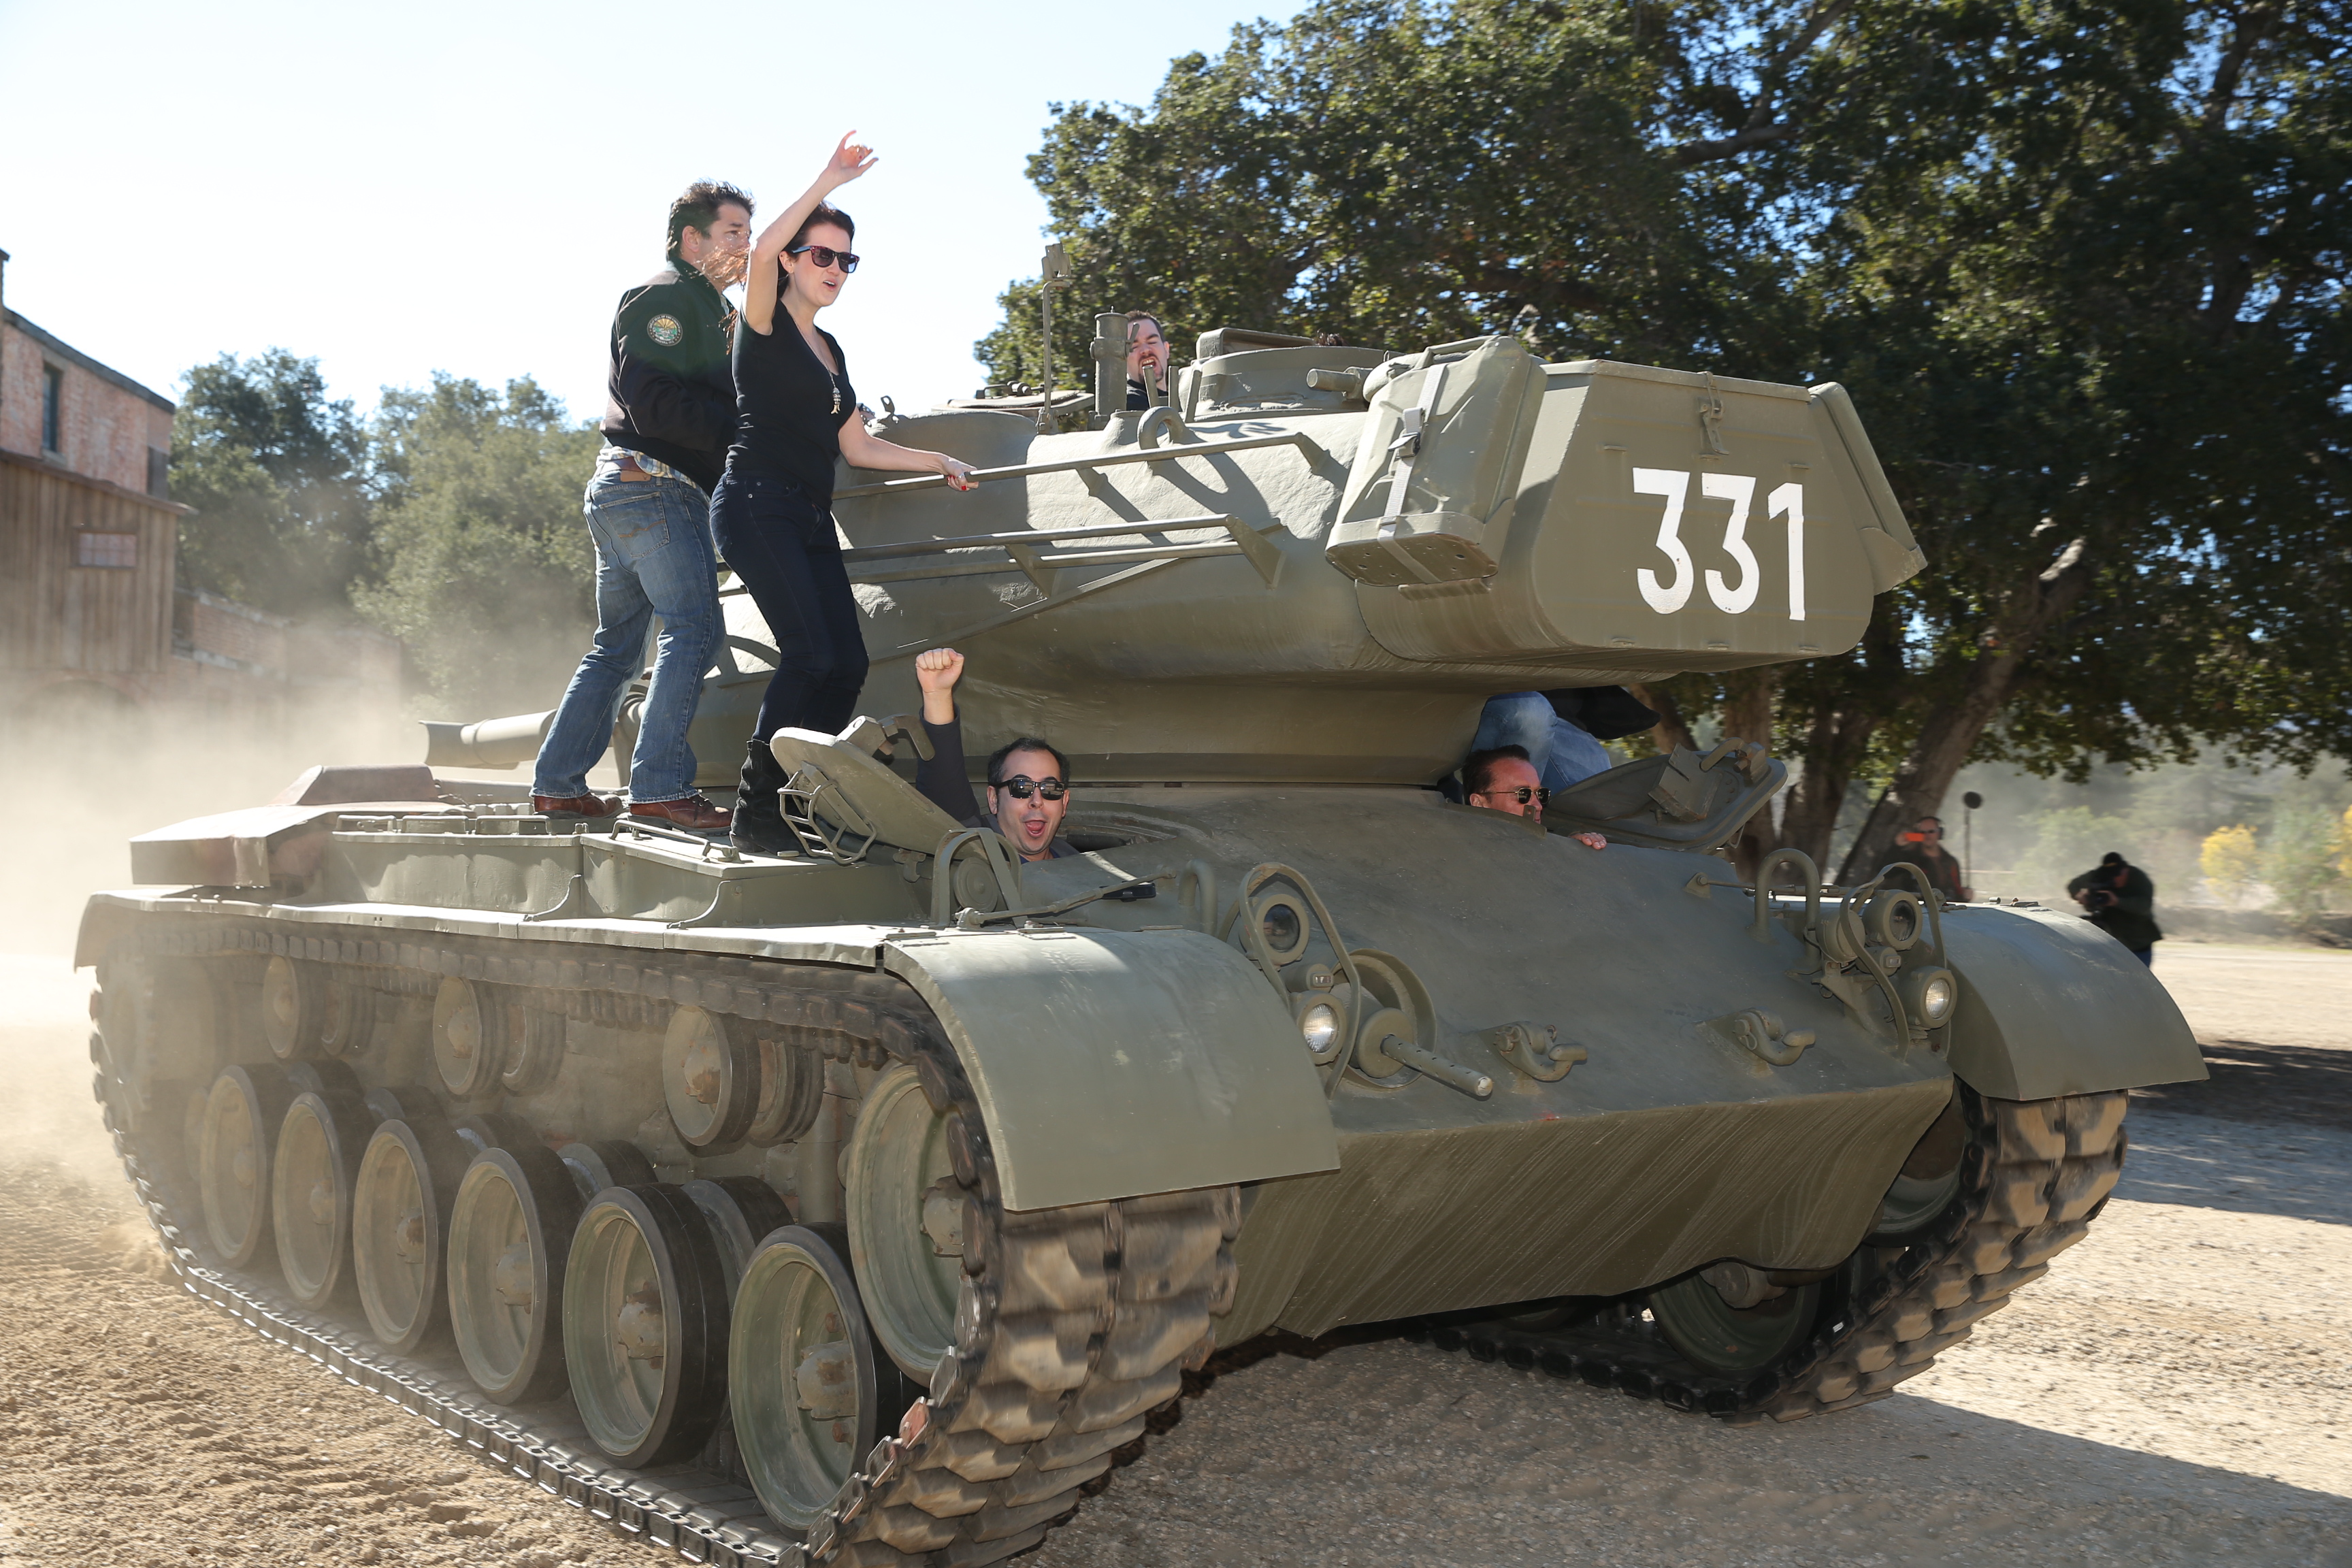 Arnold Schwarzenegger paid $20,000 to ship his old tank to ...